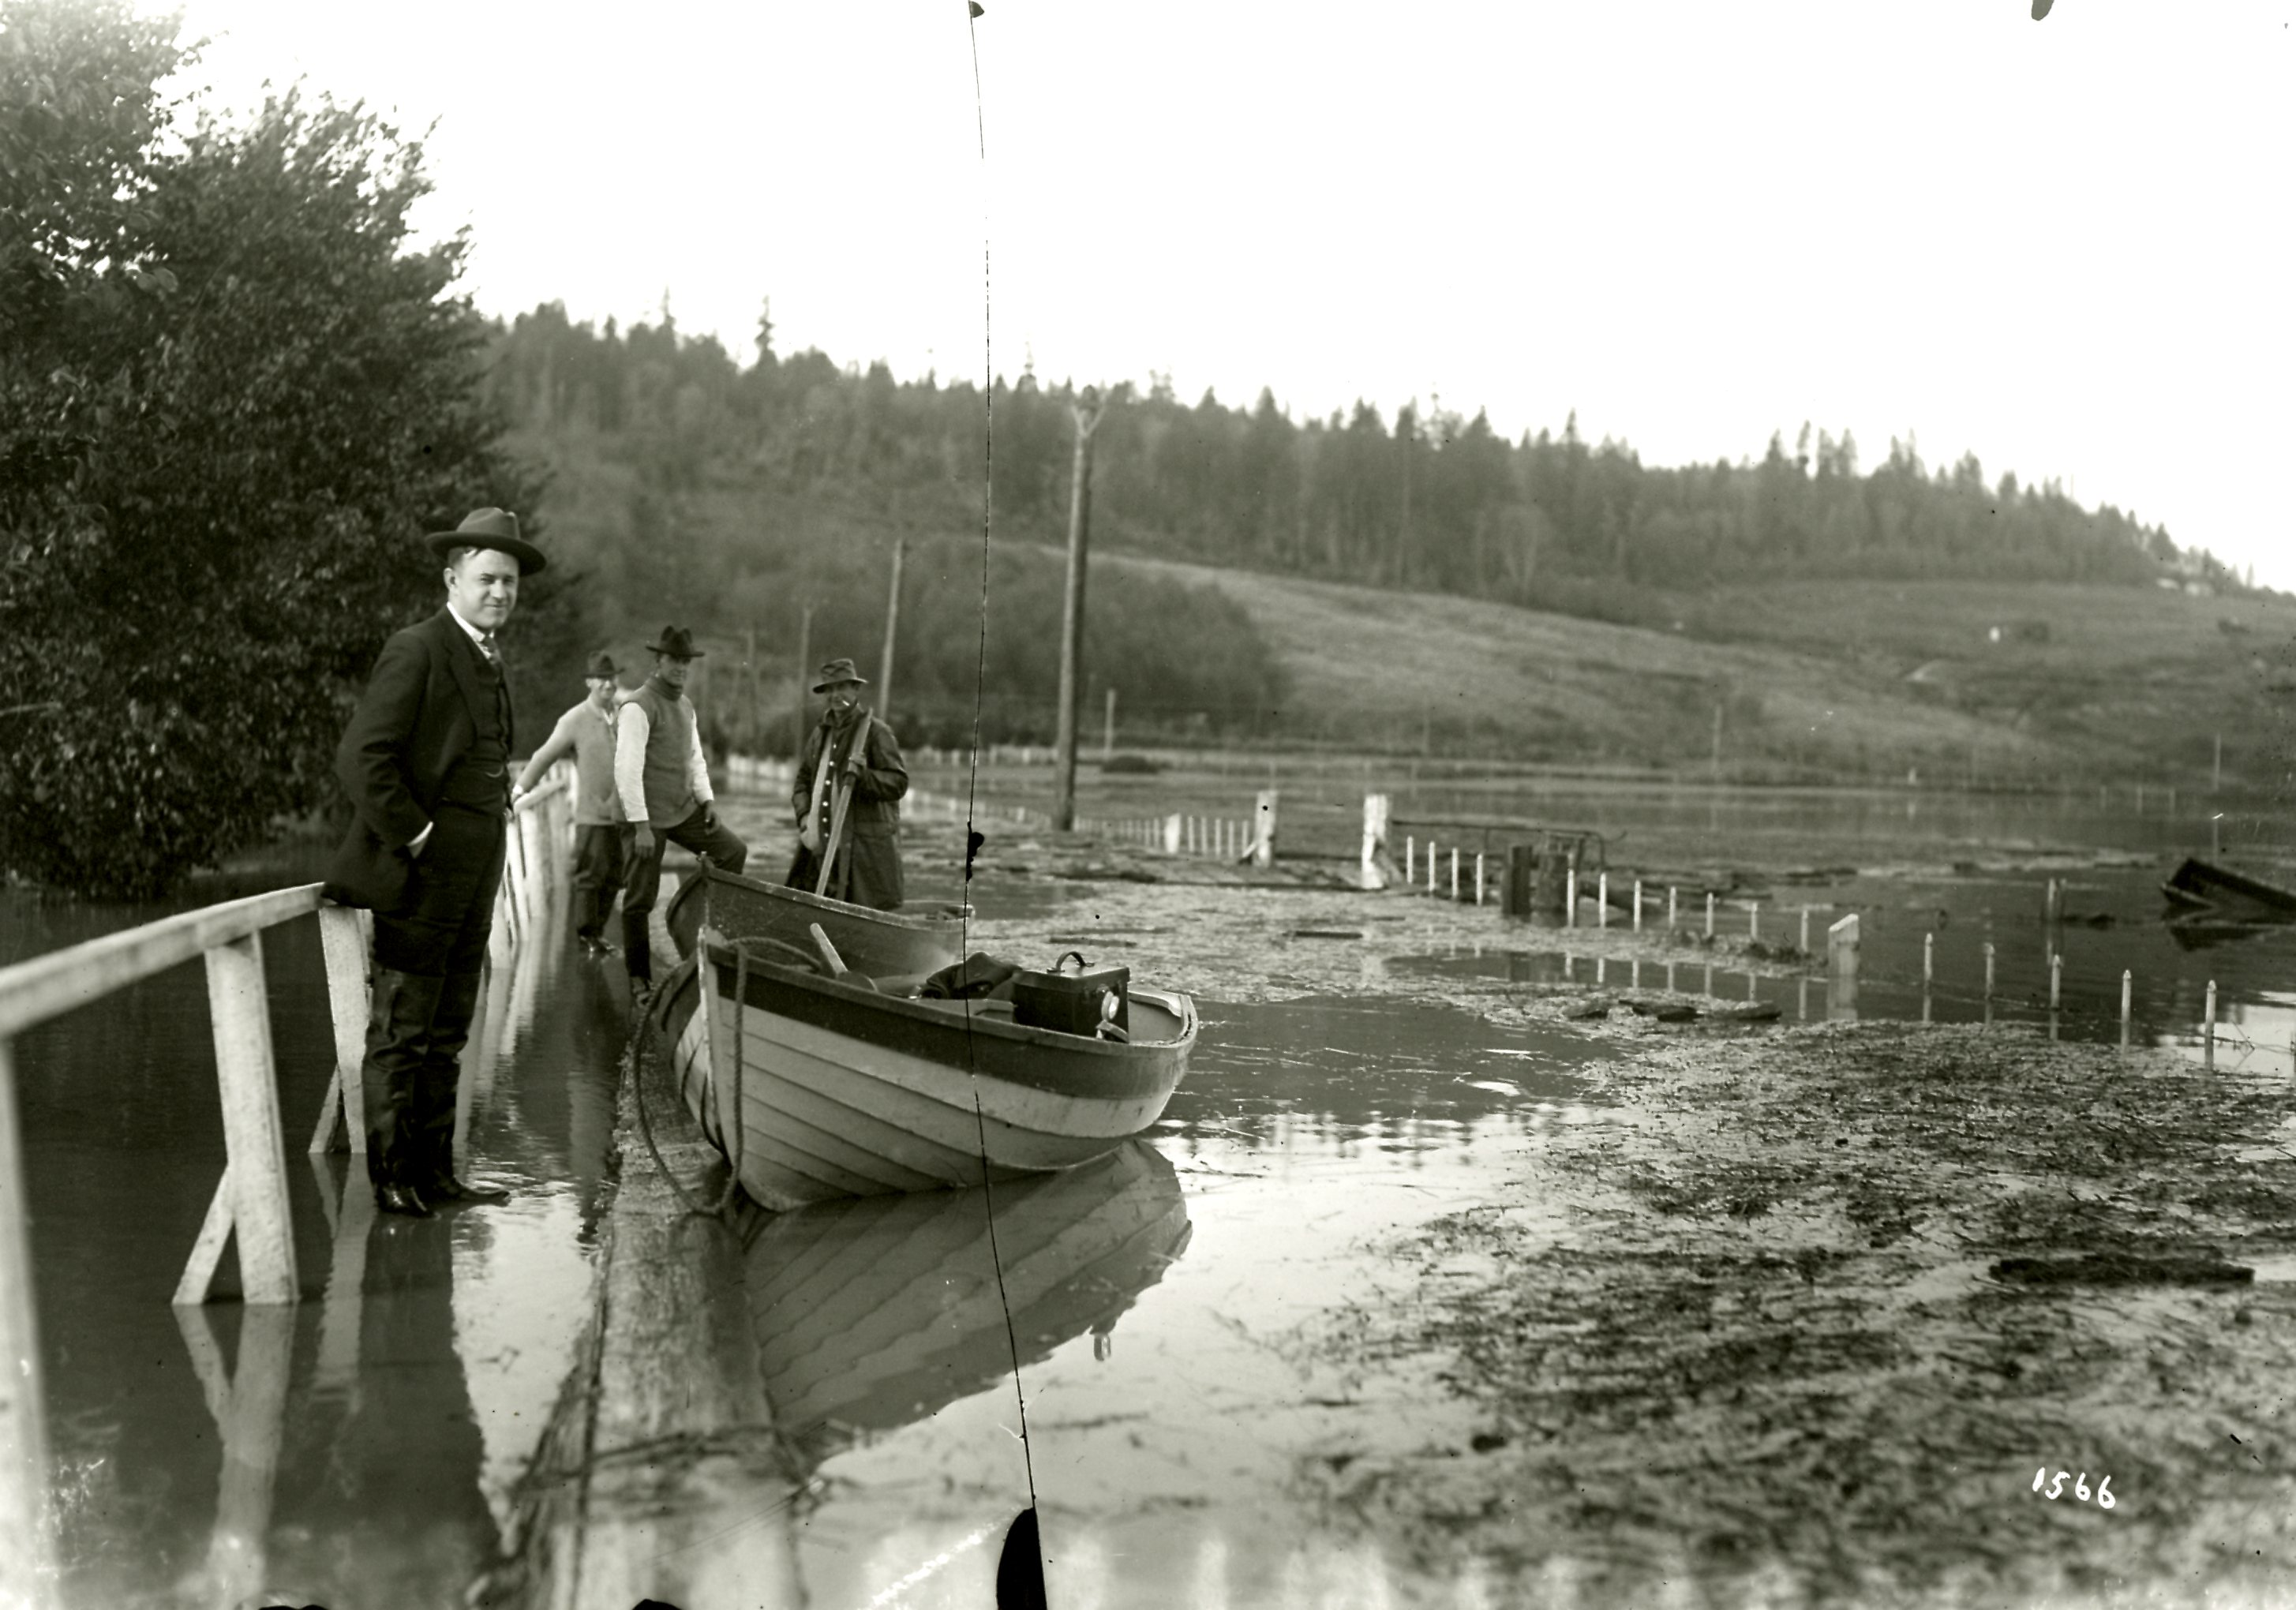 Broken Glass Plate Negative of a Man with a Boat During the Flood at Colony Farm, Circa 1921 (JPG) Opens in new window